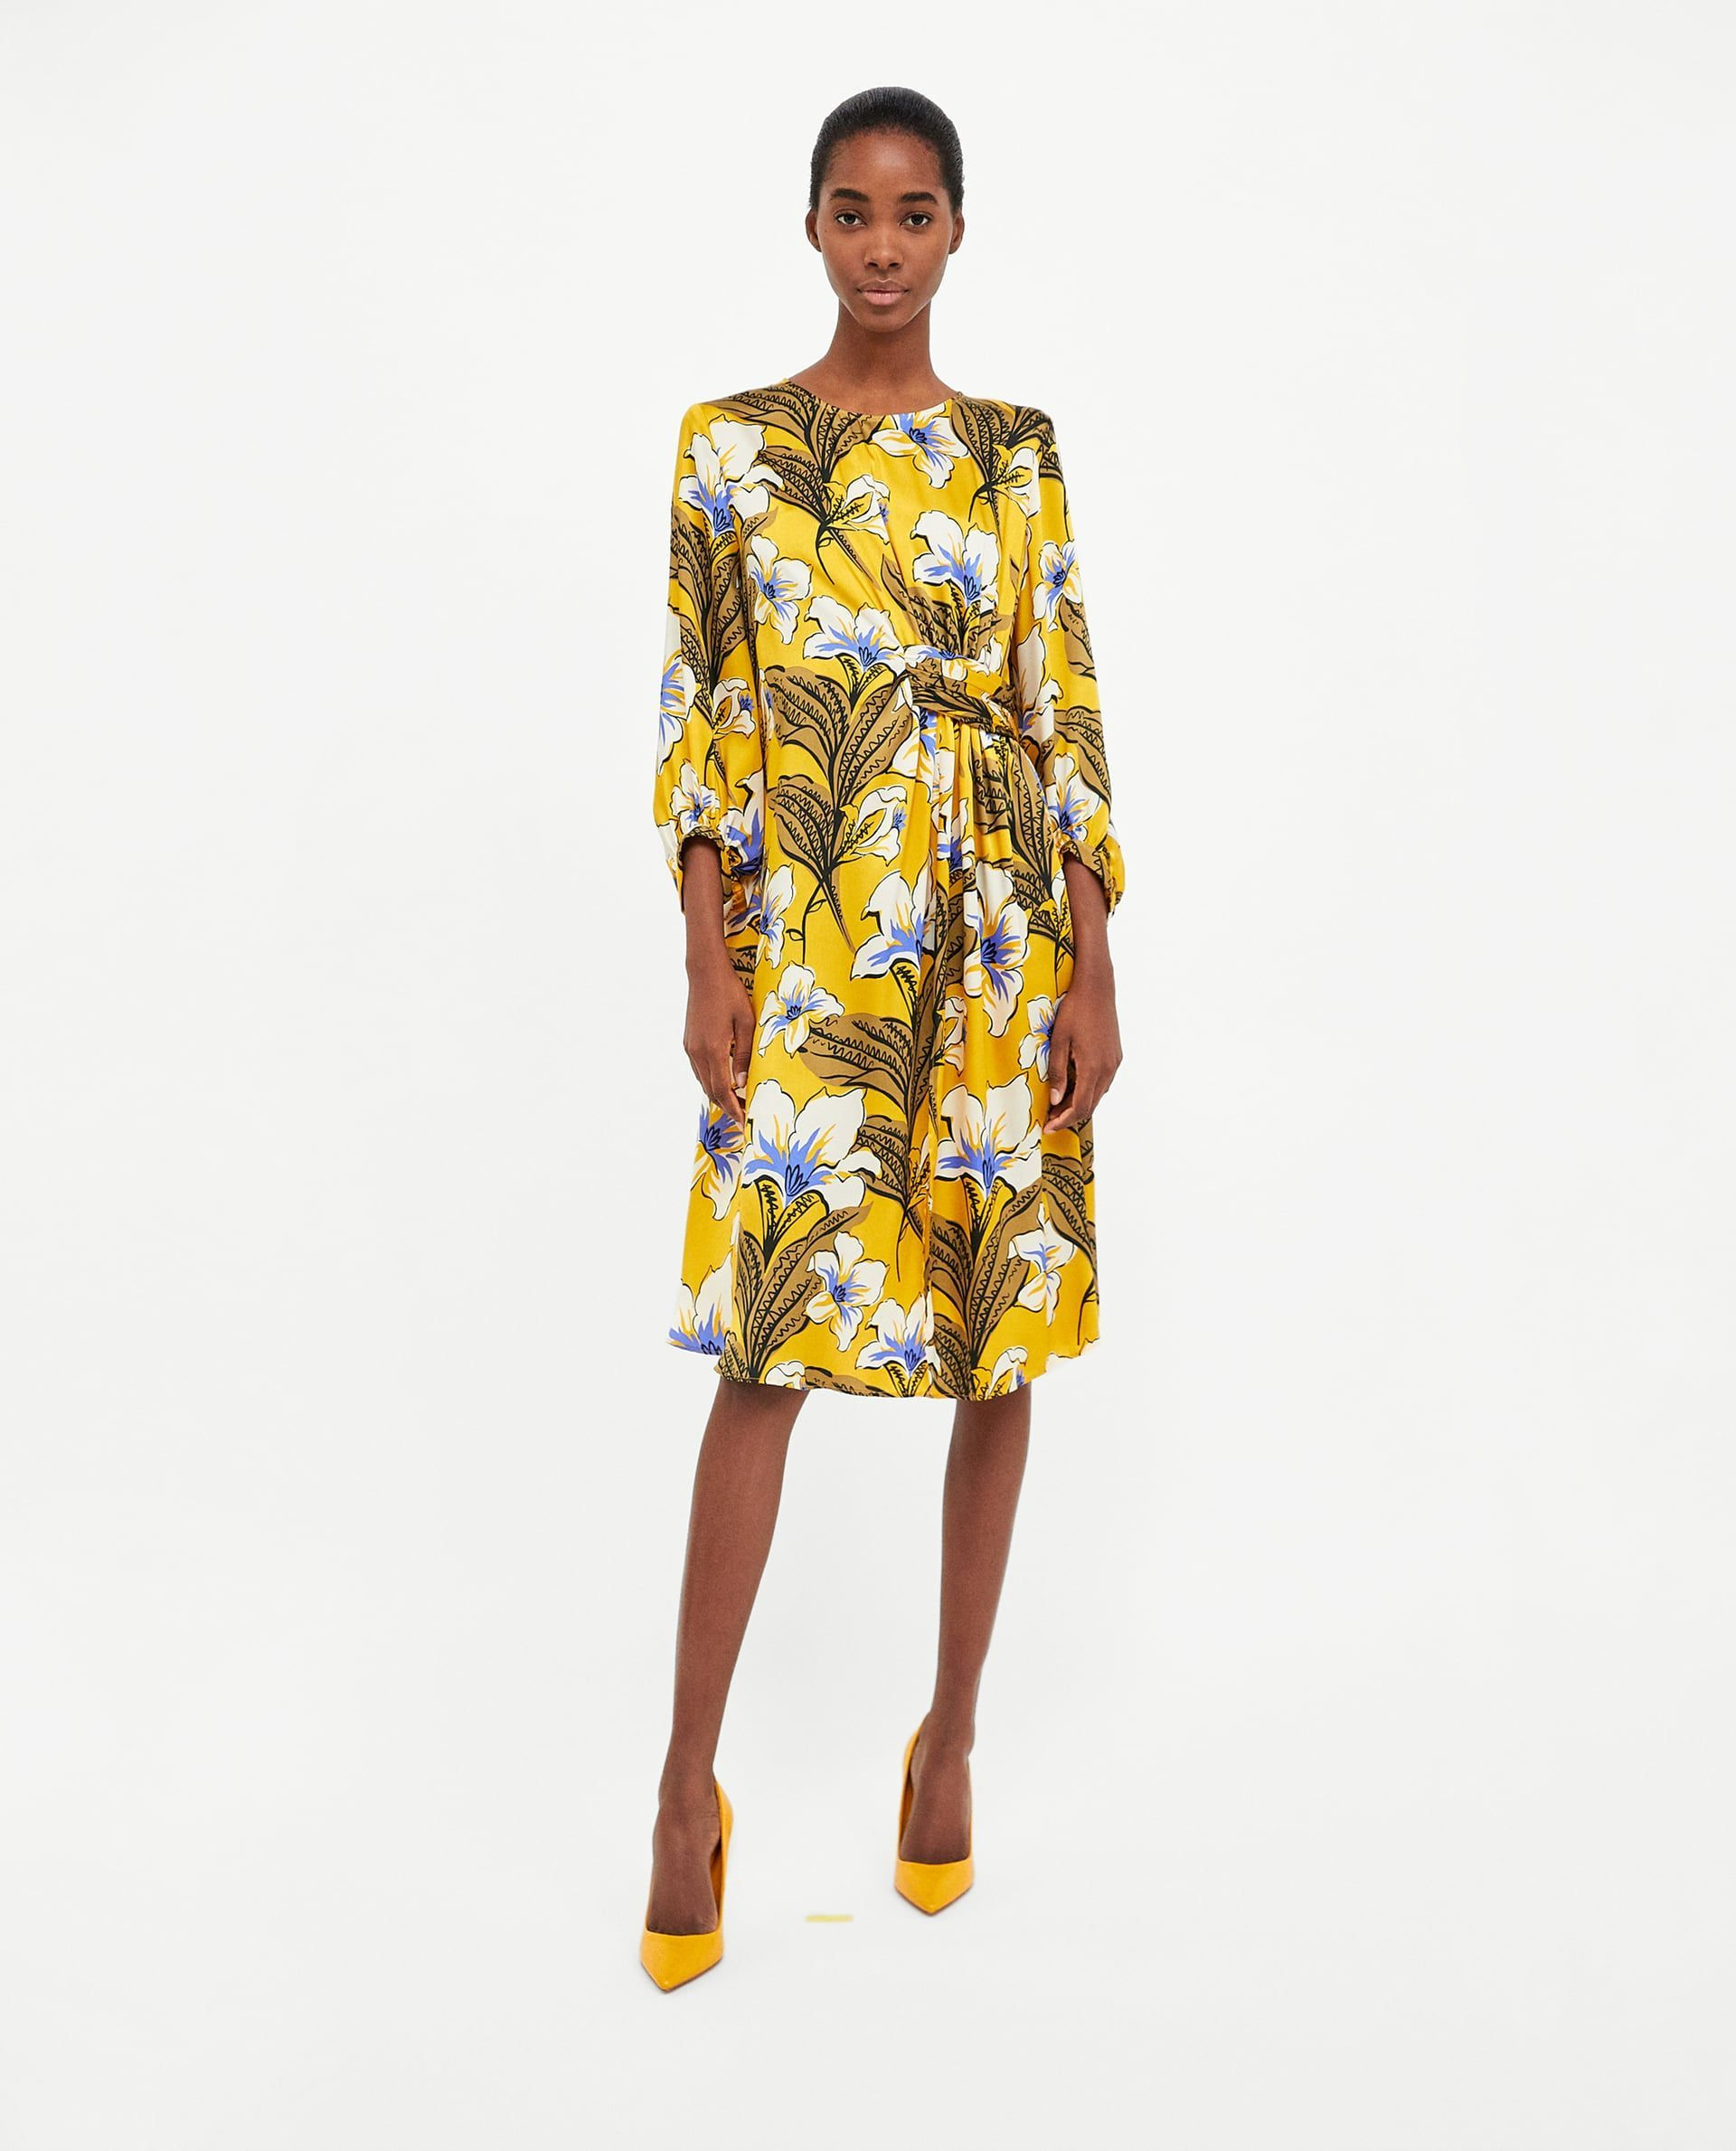 e261315d9 ZARA Floral print dress for spring. Zara Refreshed Its Best Sellers List  With The Top Spring Trends #refinery29